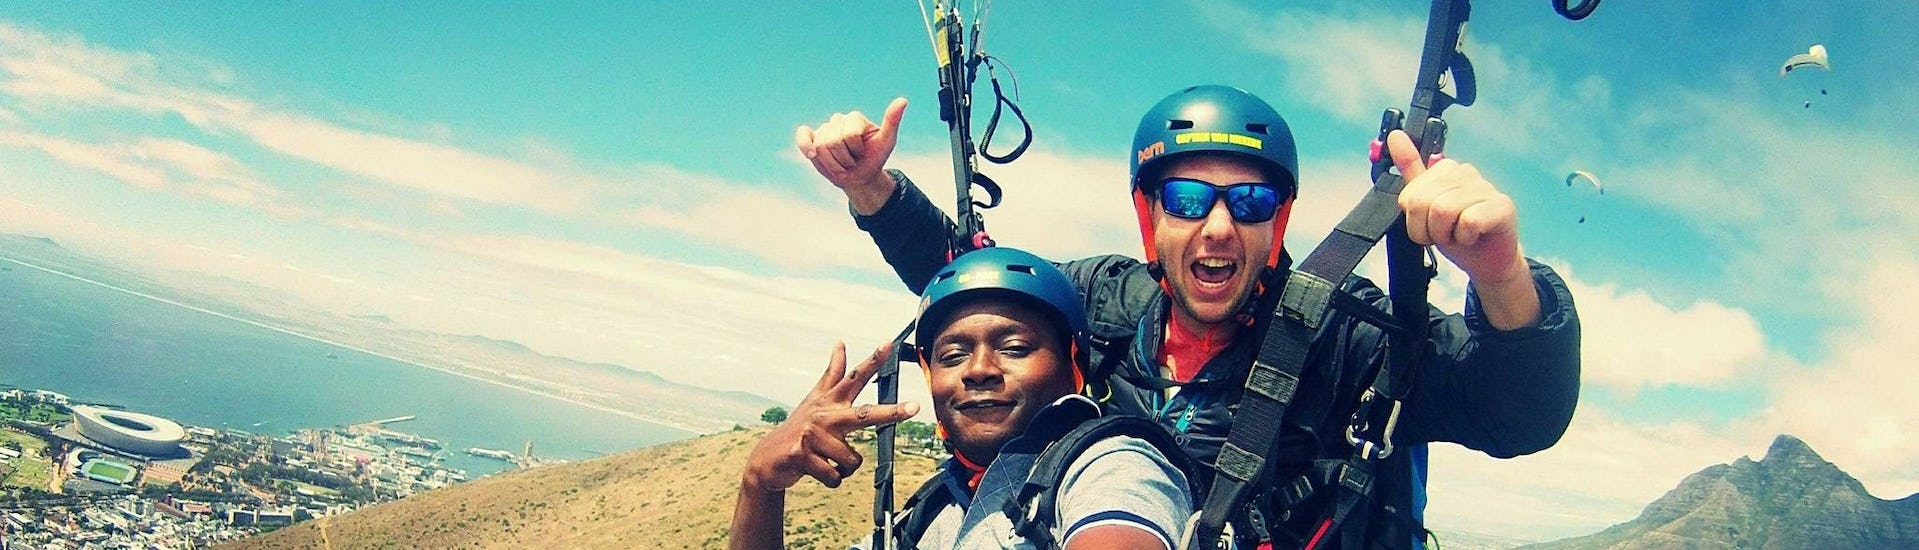 During the Paragliding in Cape Town from Lion's Head, a tourist is enjoying his first paragliding flight with his professional pilot from Icarus Tandem Paragliding.